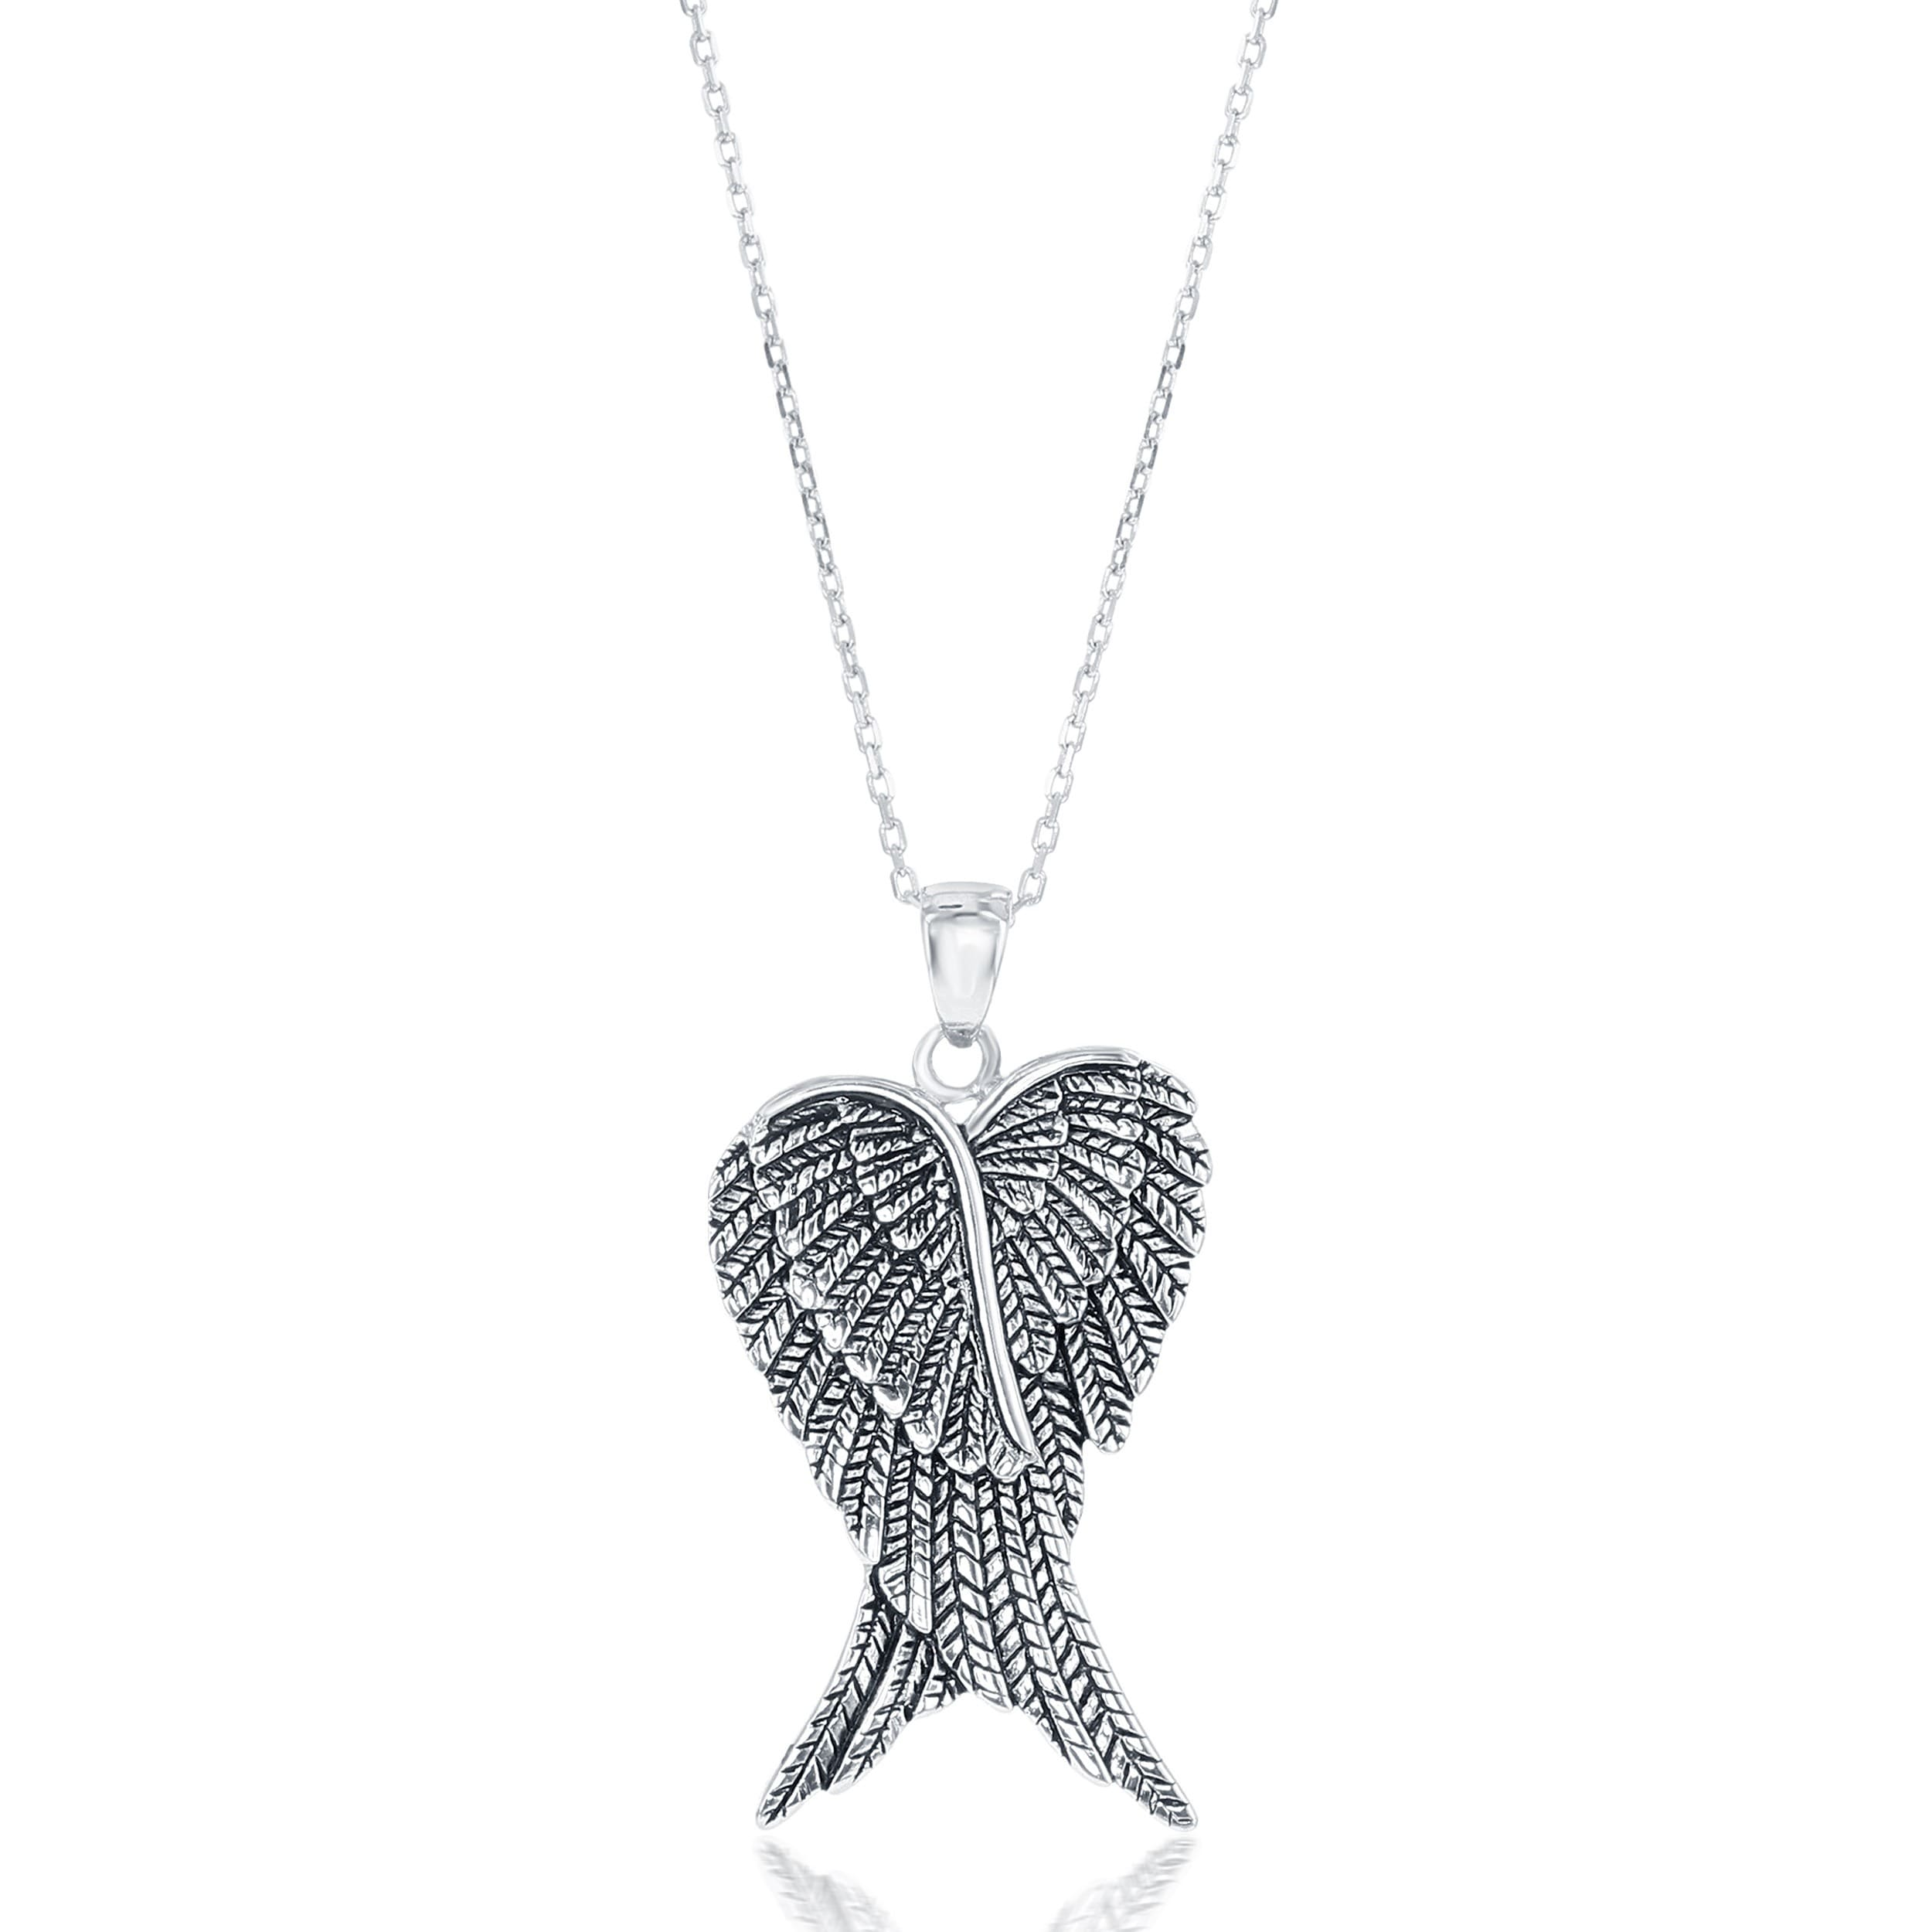 Handmade Silver Tone Locket Pendant Necklace Angel with Wings